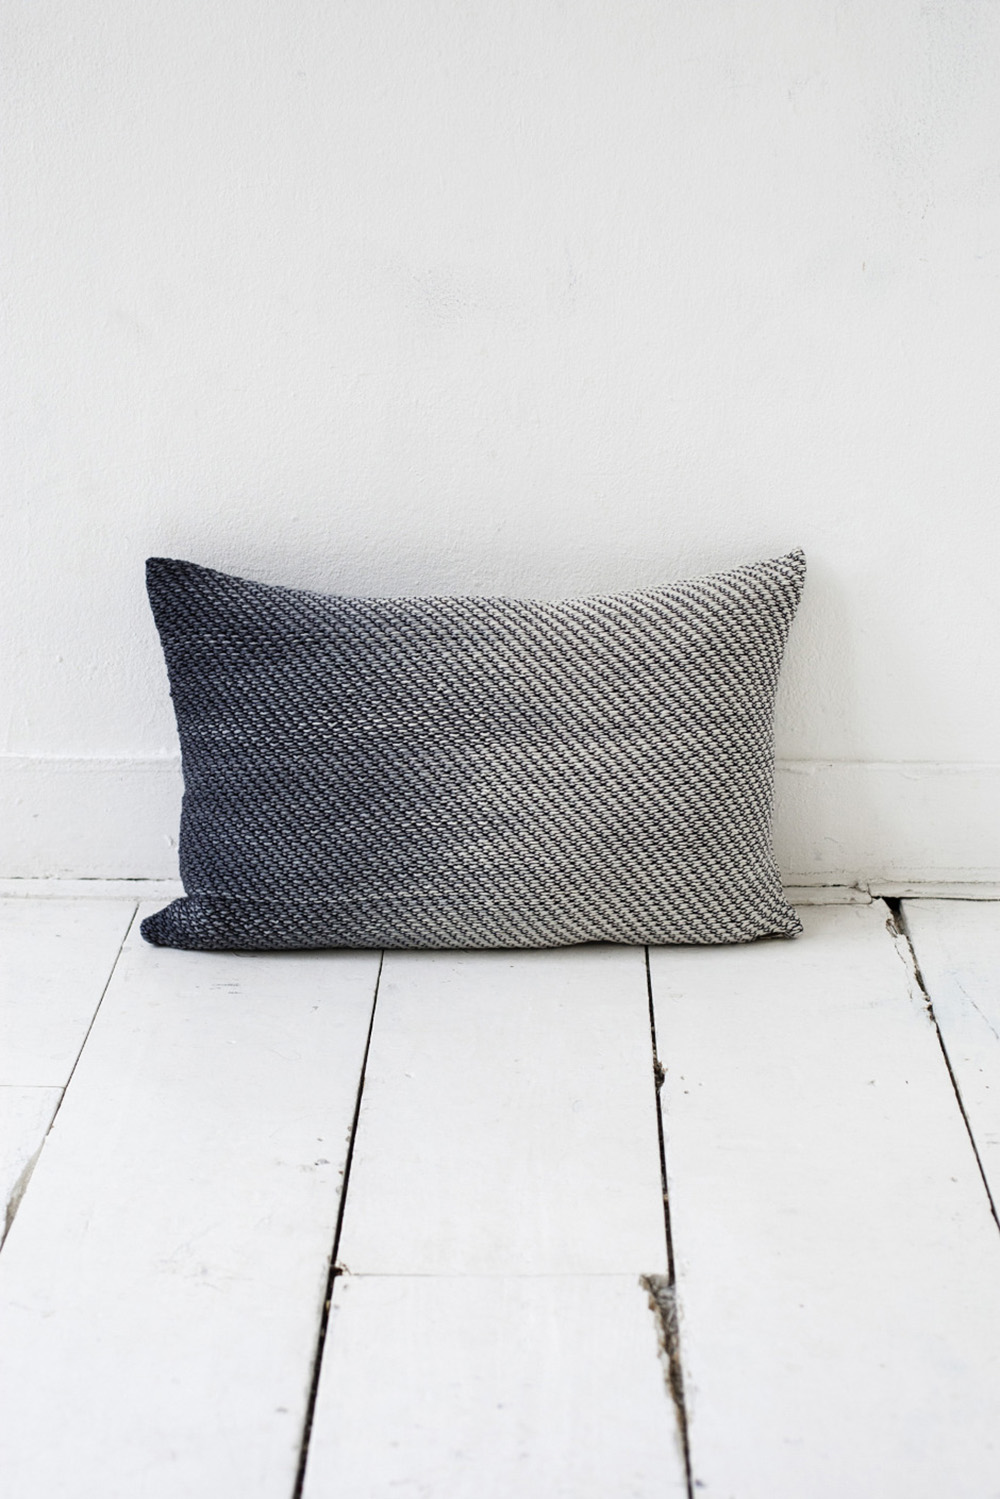 Home-Accessories-Pillows-Knitted-cushion6-940x1409